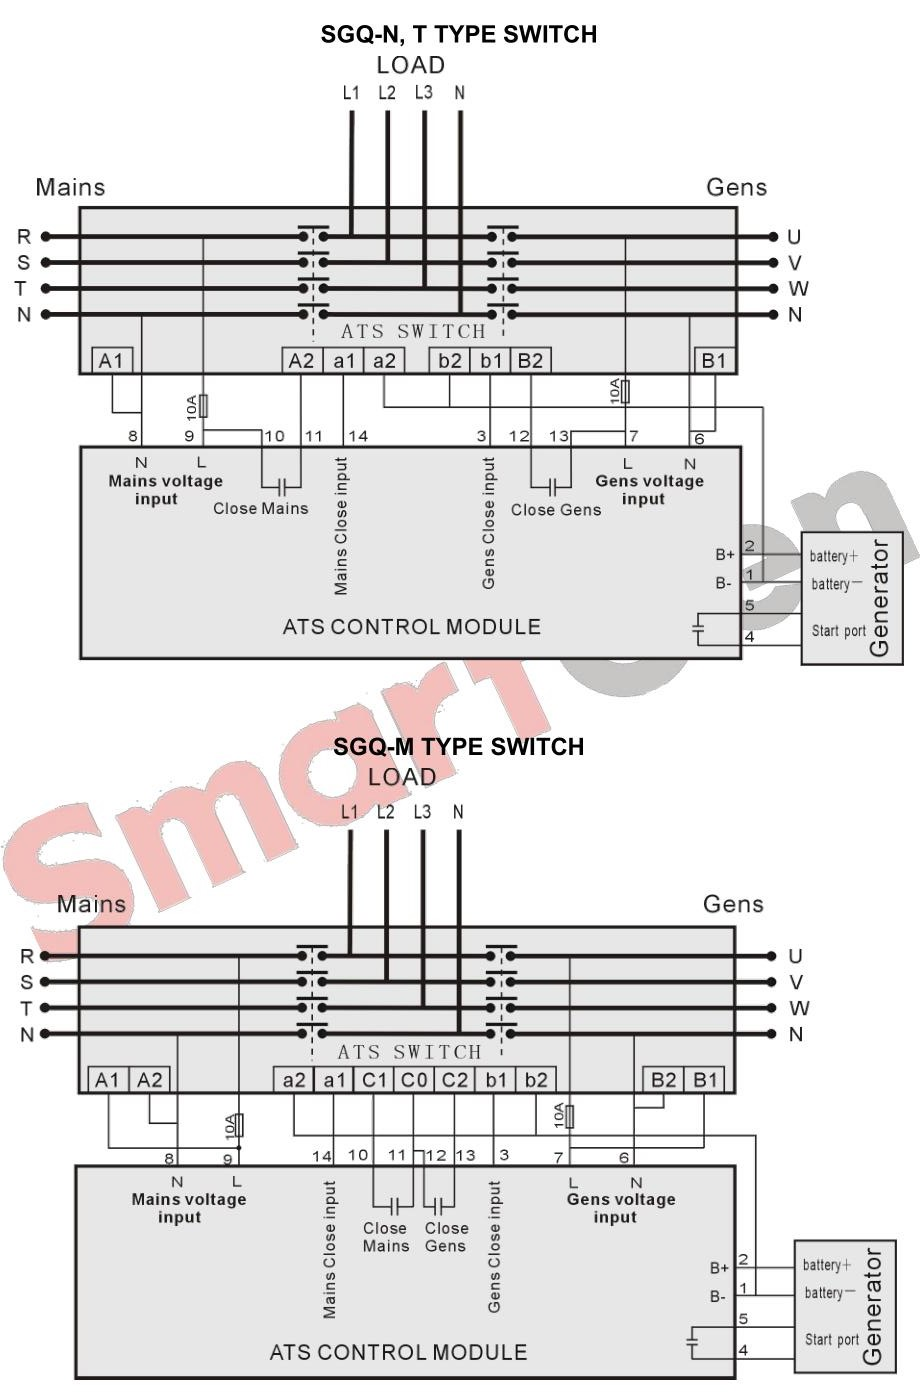 Smartgen Controller Wiring Diagram 34 Images Panel Ats Genset Hat72 Hat72monitors 1p2w Ac System Smartgengenset Controllergenerator At